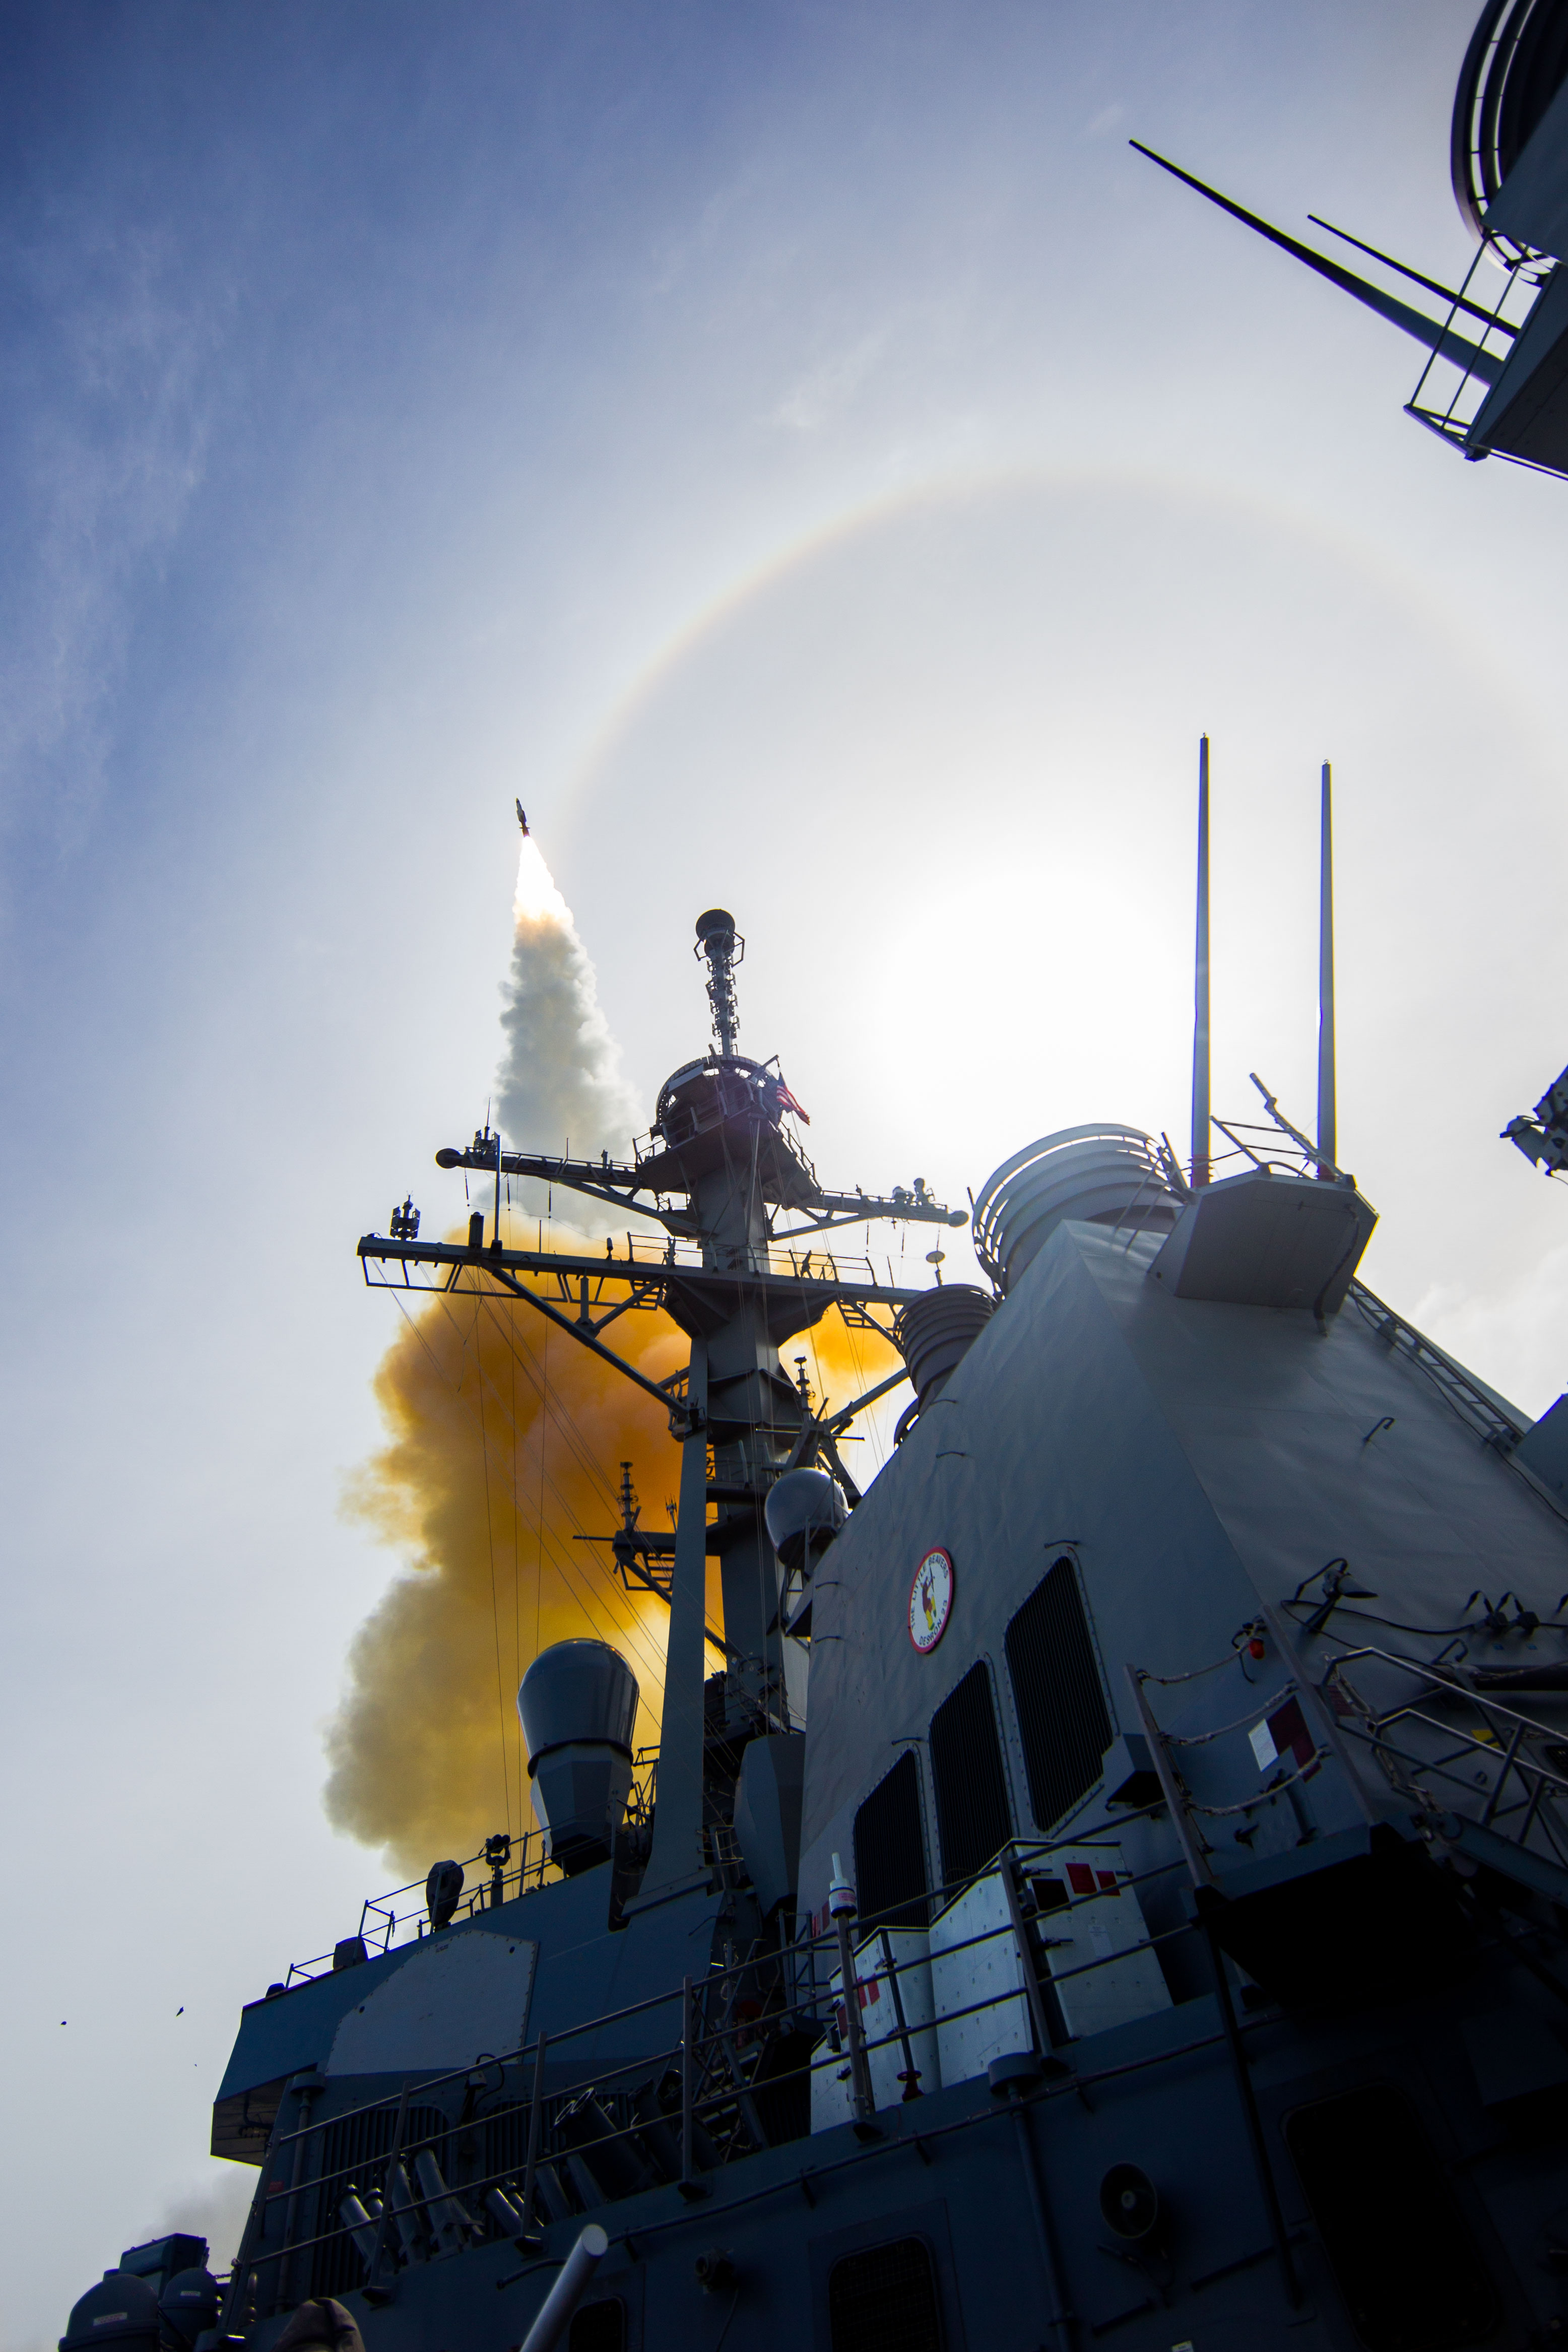 Navy needs new servers for aegis cruisers and destroyers after chinese